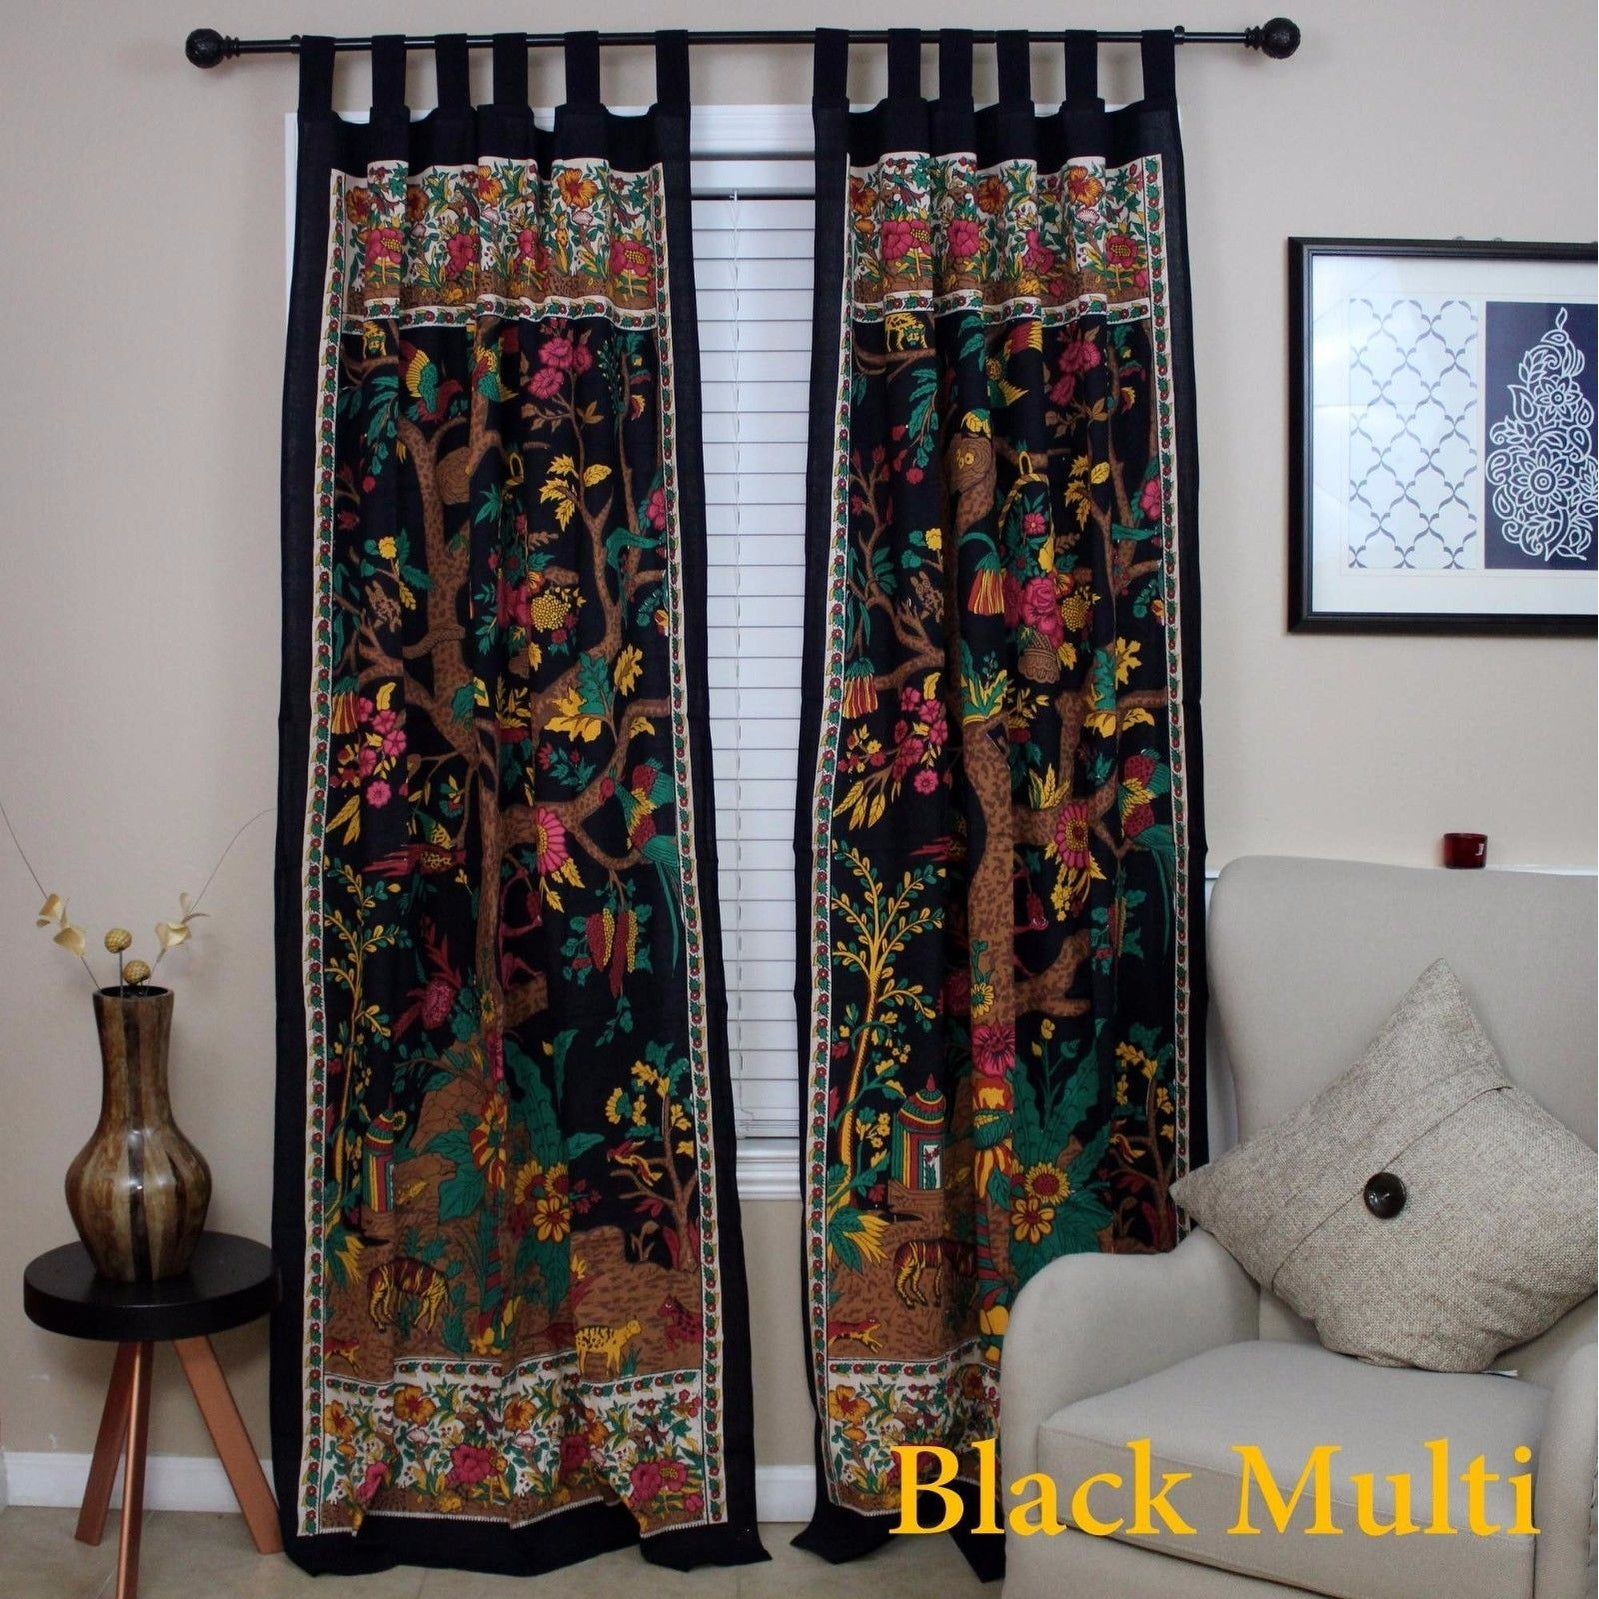 Handmade 100% Cotton Tree of Life Tab Top Curtain Drape Panel - 8 Color options - Black Gold Blue Purple Tan - 44 x 88 inches - Thumbnail 1